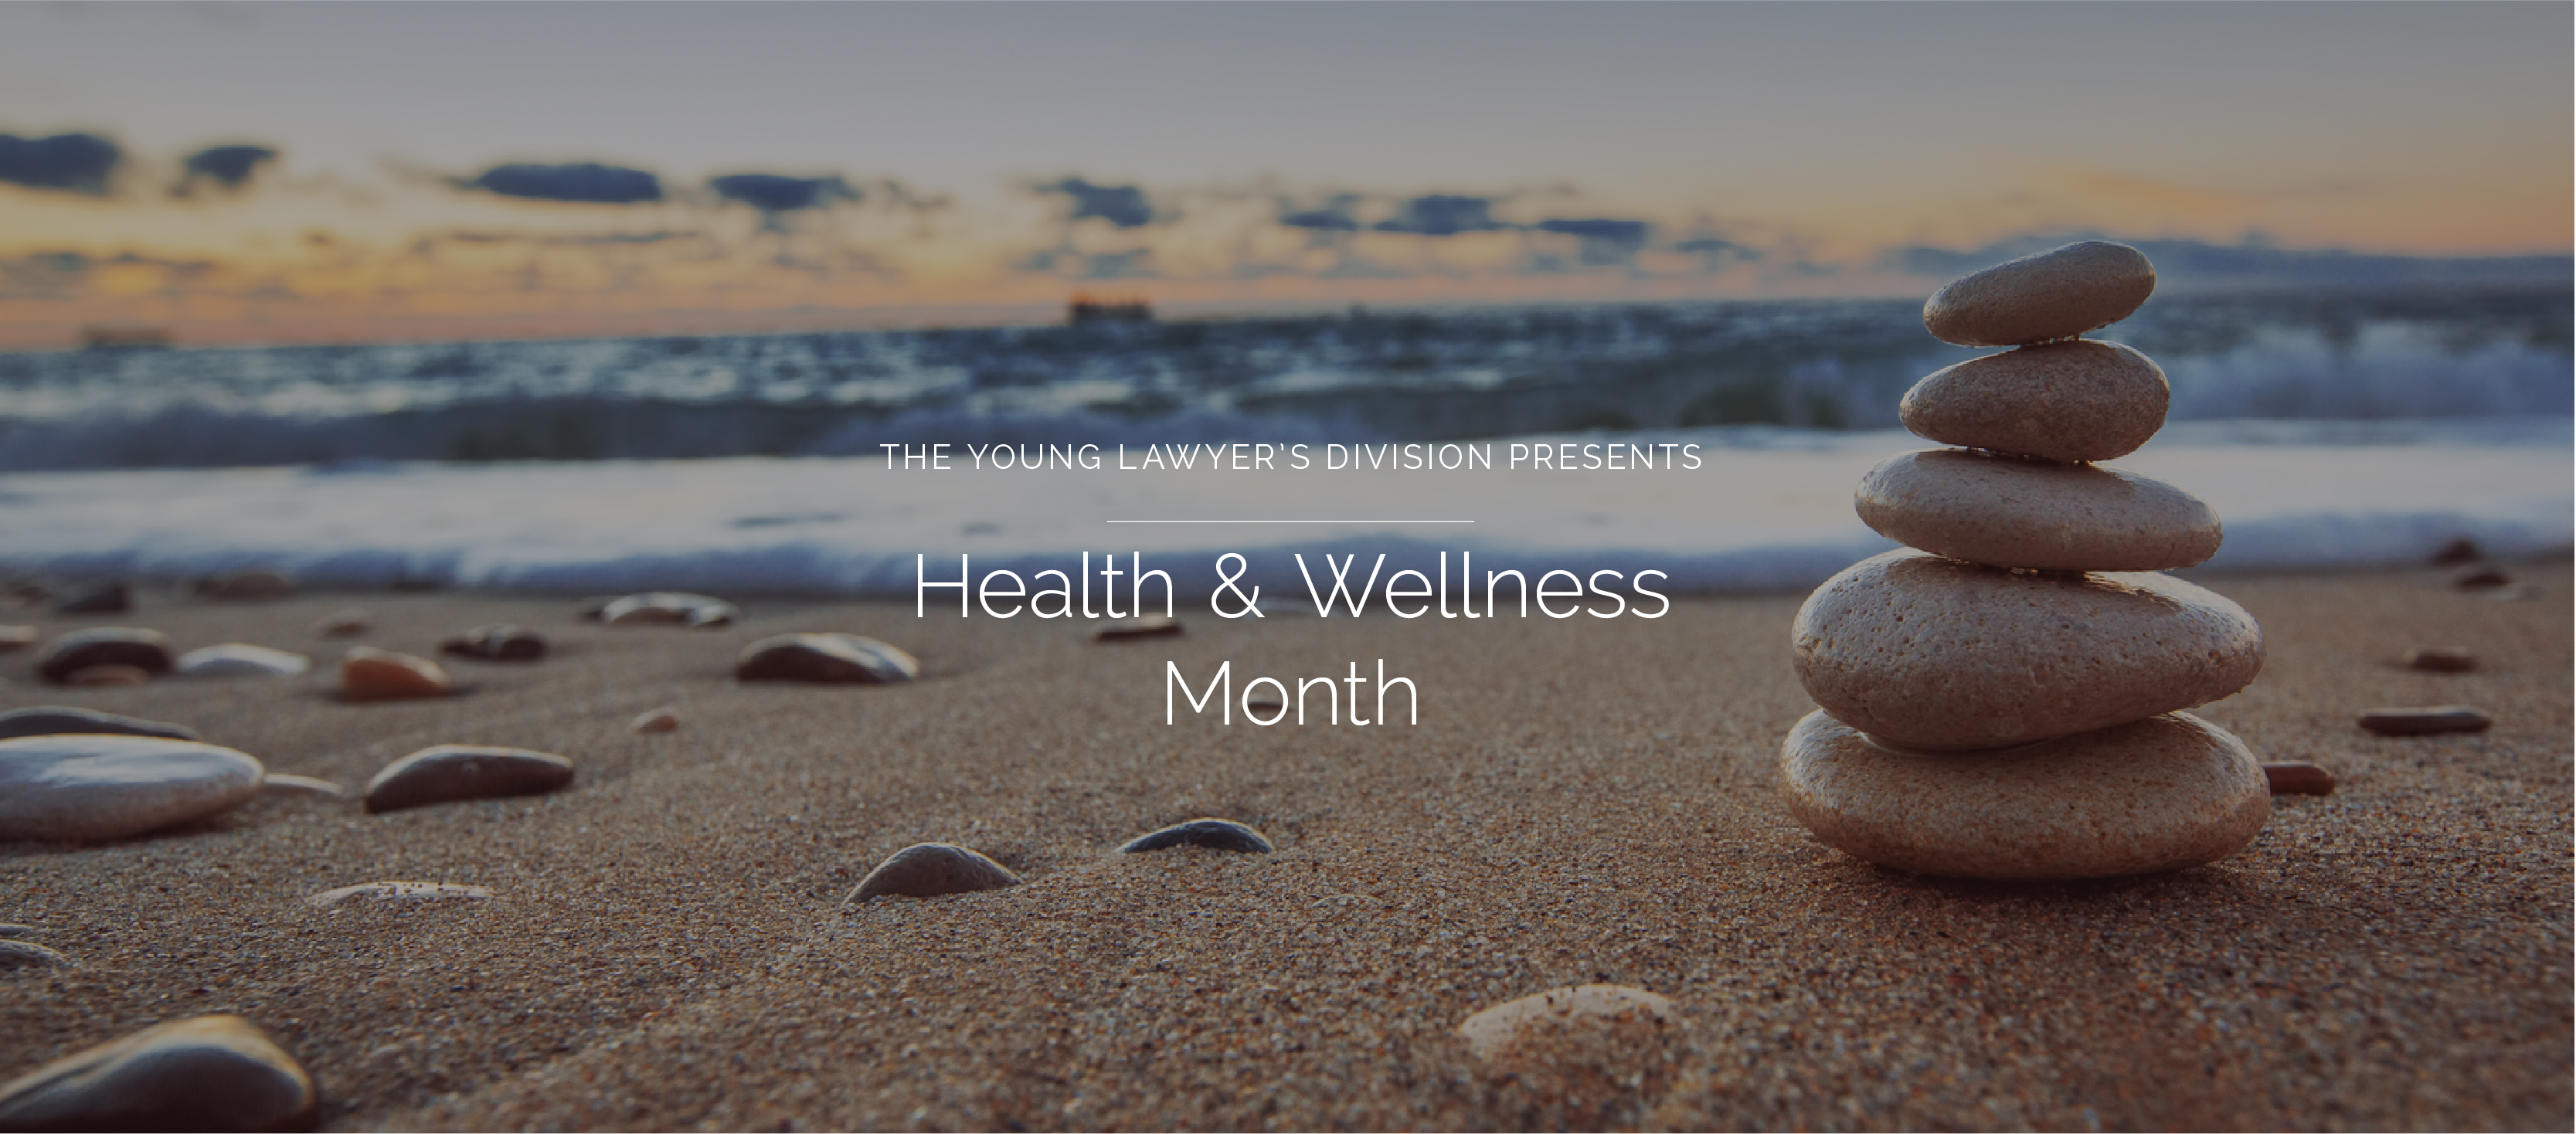 FLAYLD Health & Wellness Month with a beach background